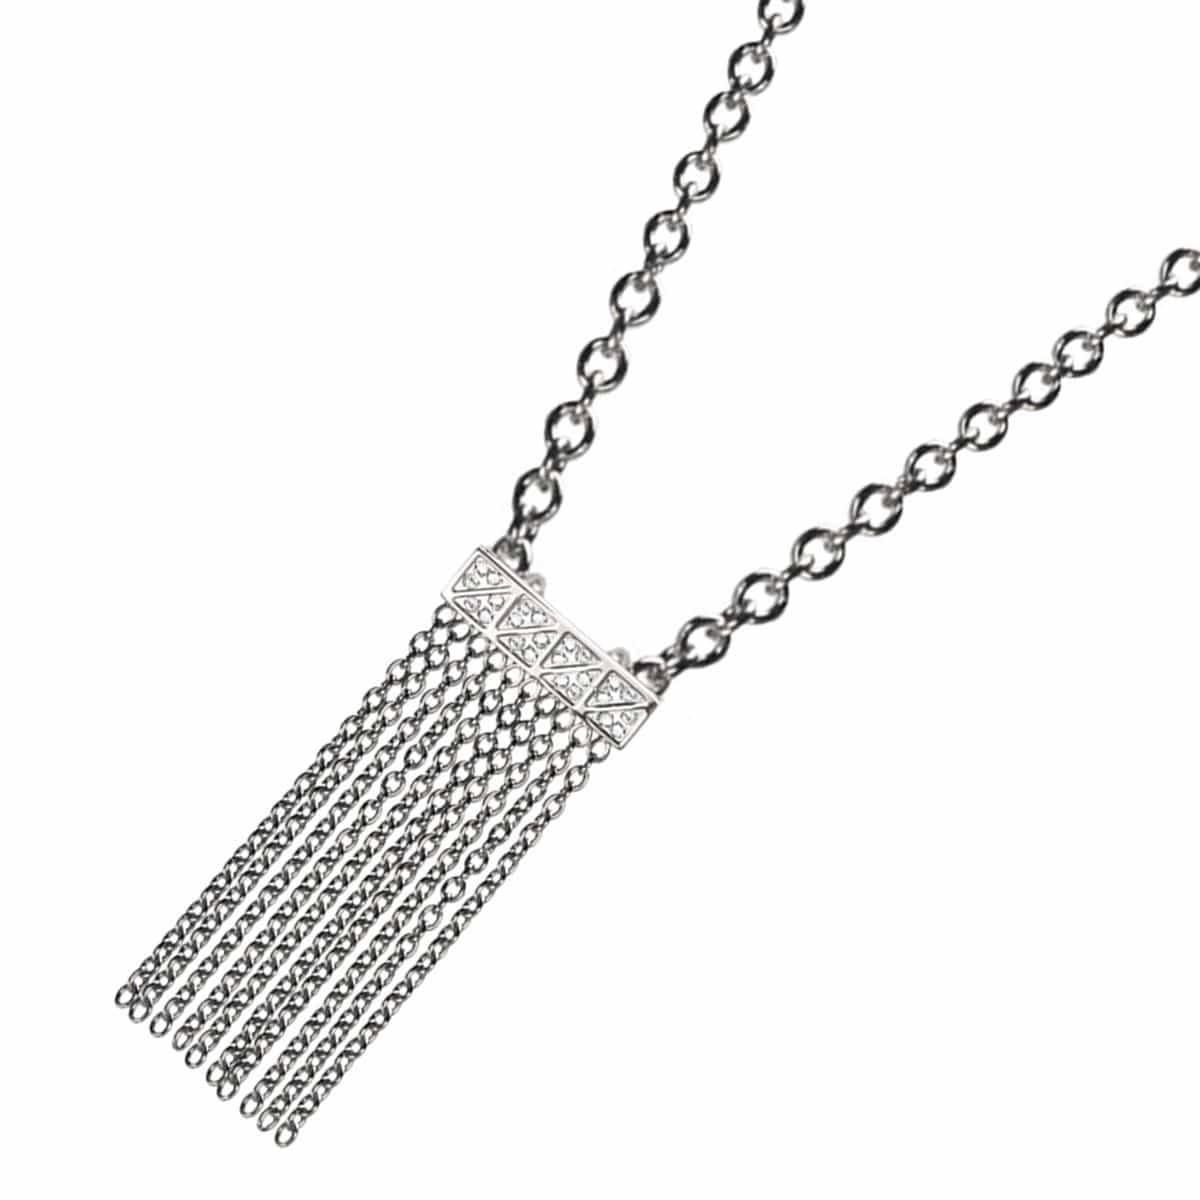 Silver Stainless Steel and CZ Waterfall Pendant